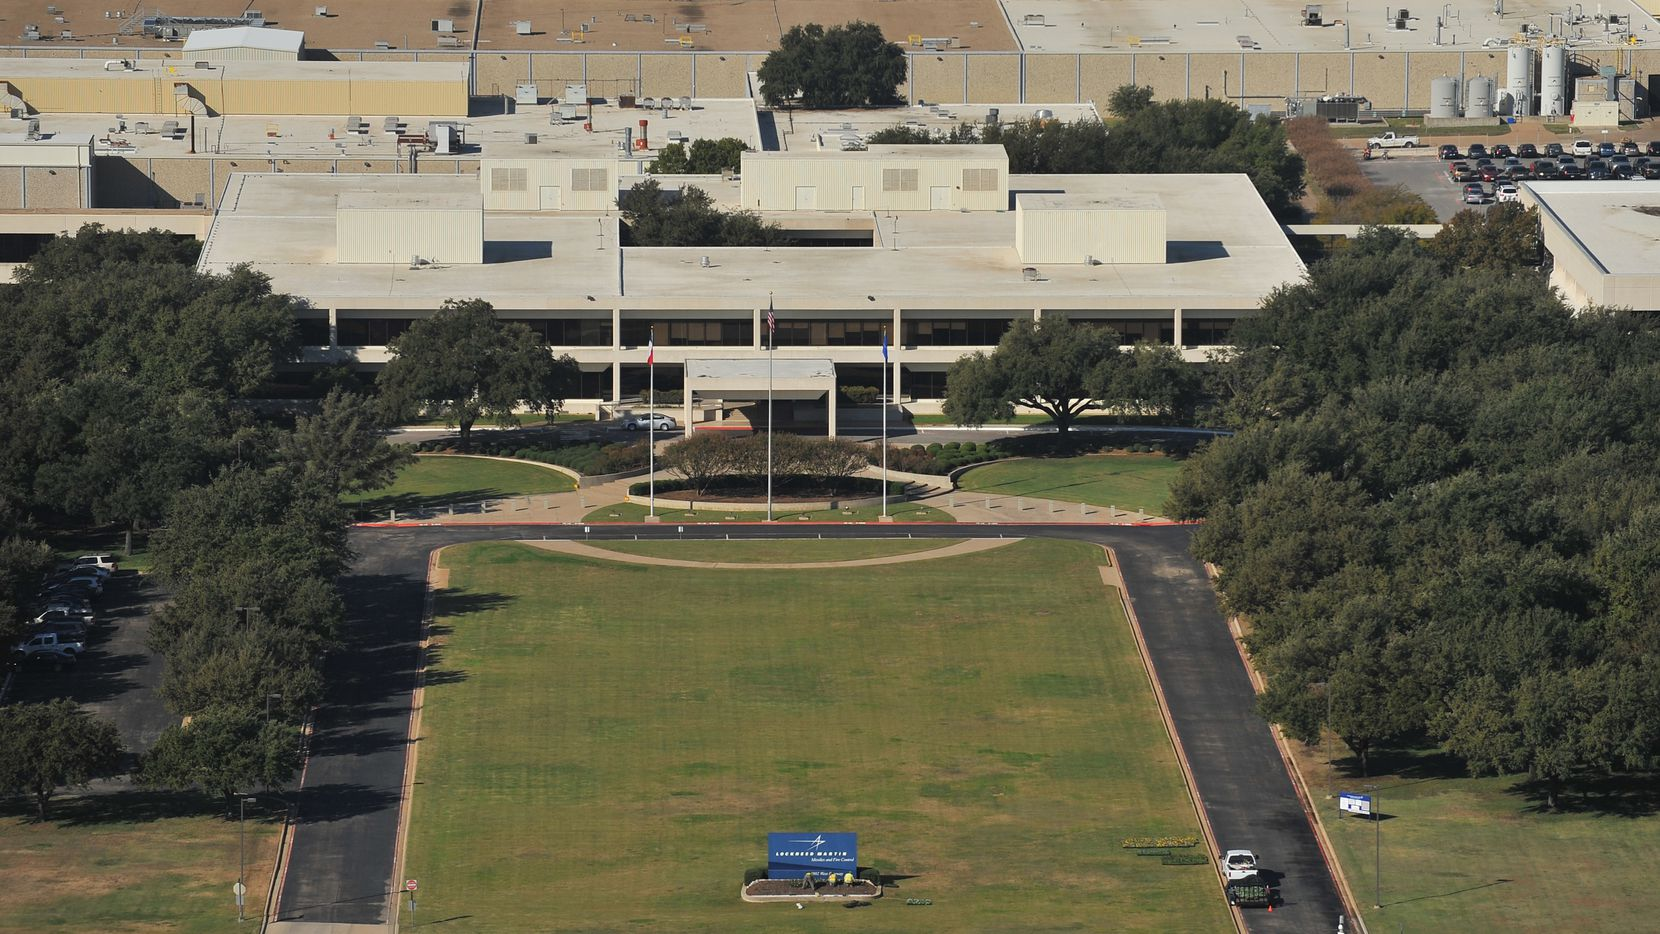 Exterior of Lockheed Martin's Missiles and Fire Control facility in Grand Prairie, Texas.